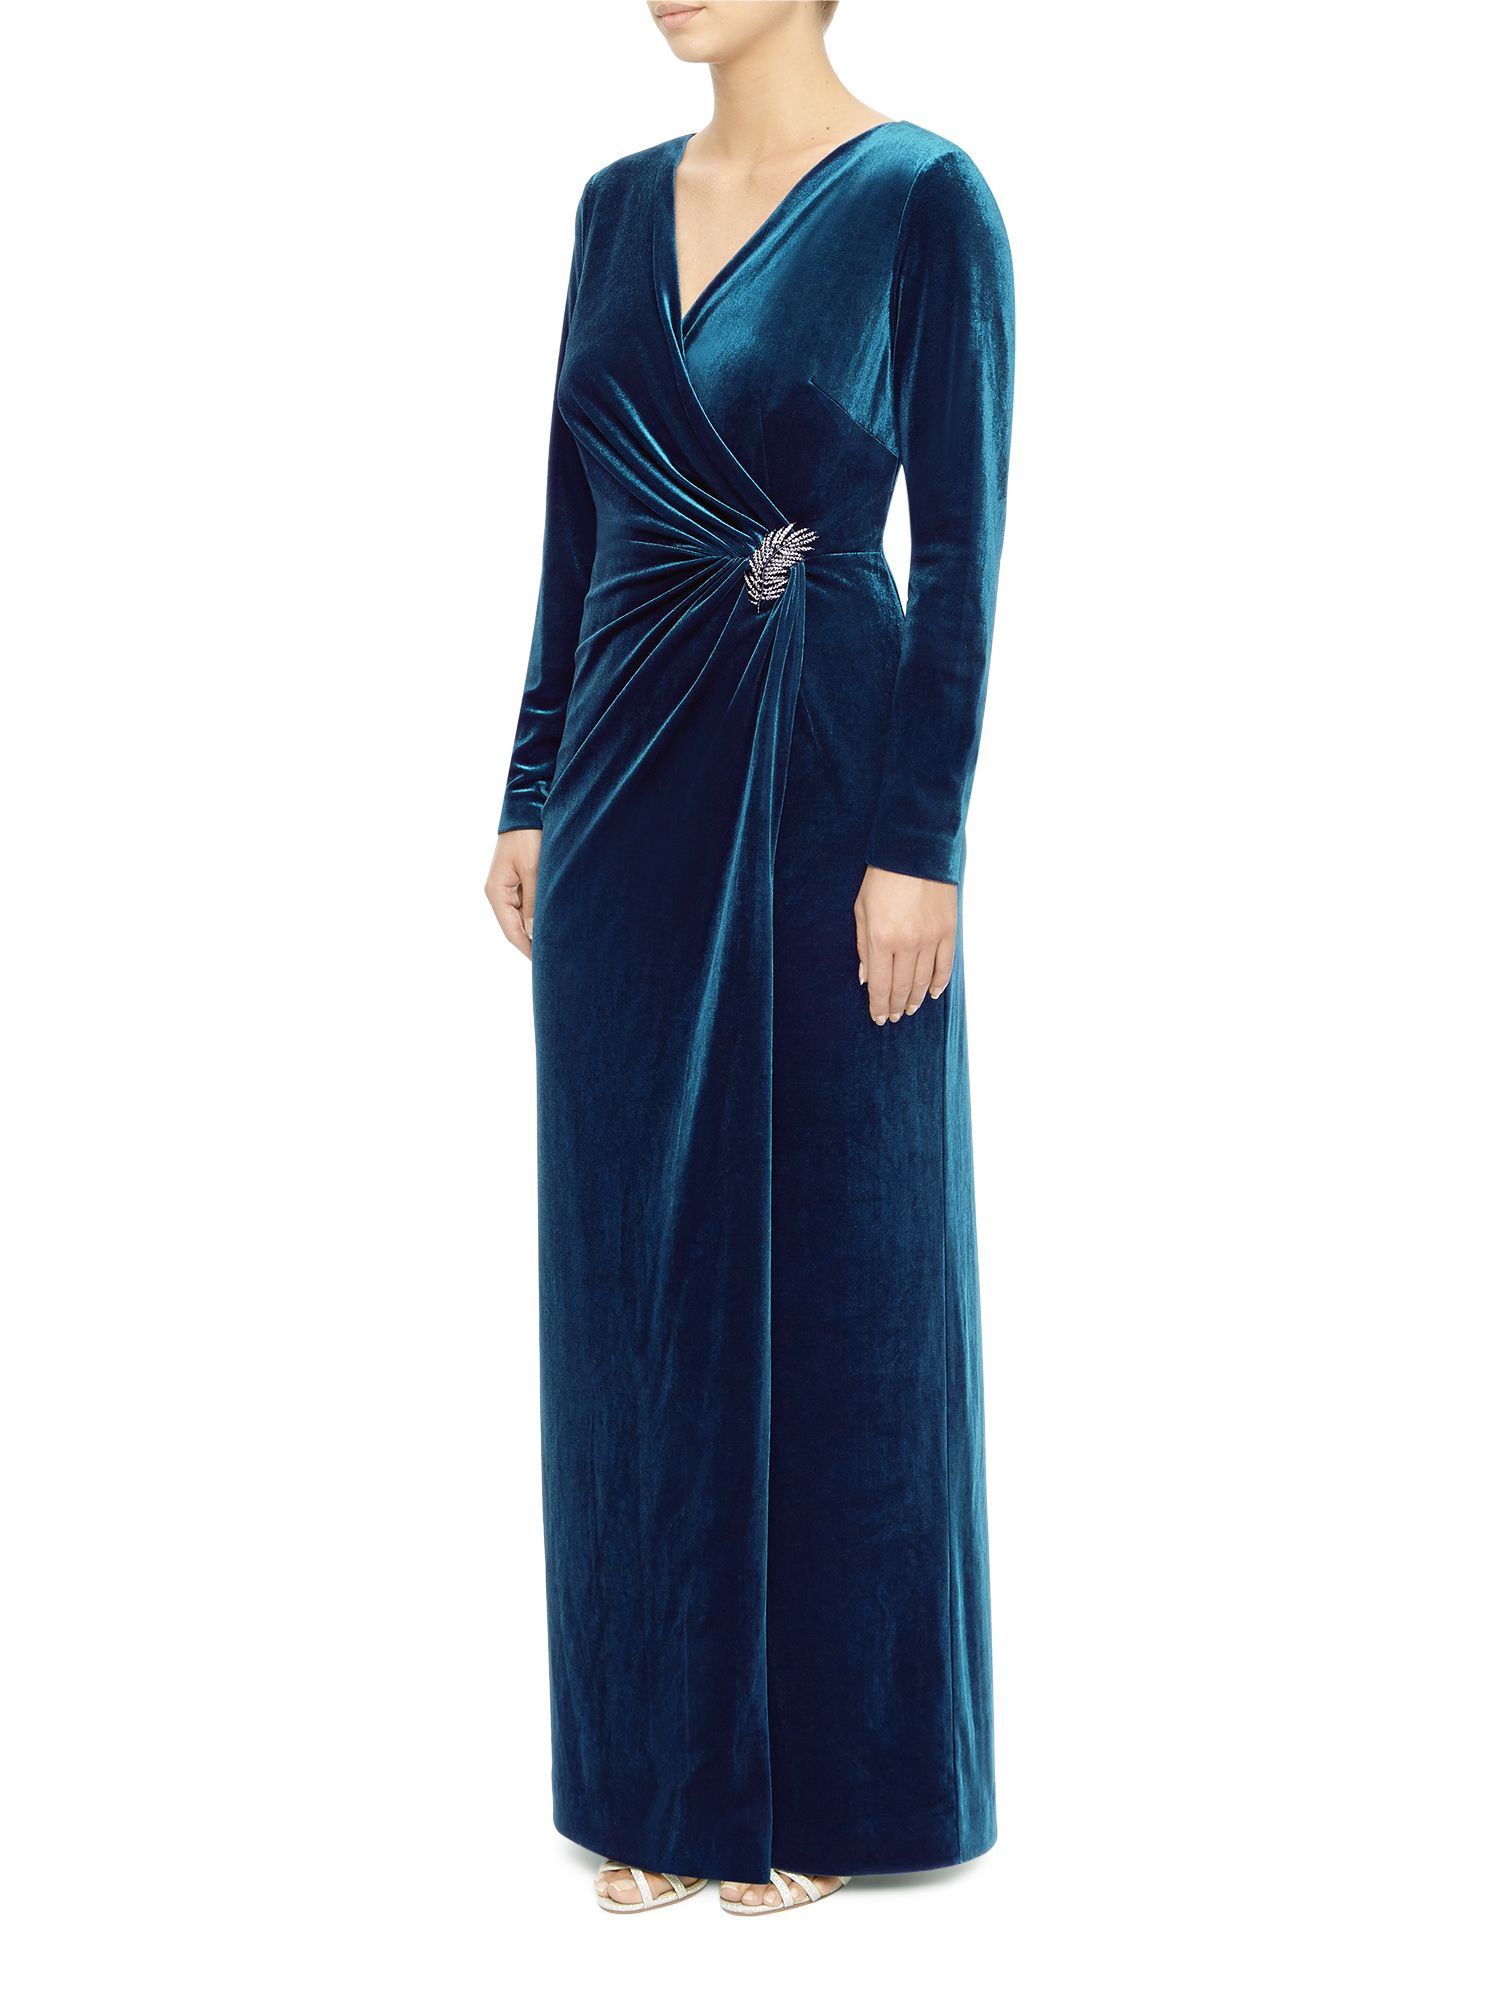 Jacques vert Velvet Maxi Dress in Blue | Lyst